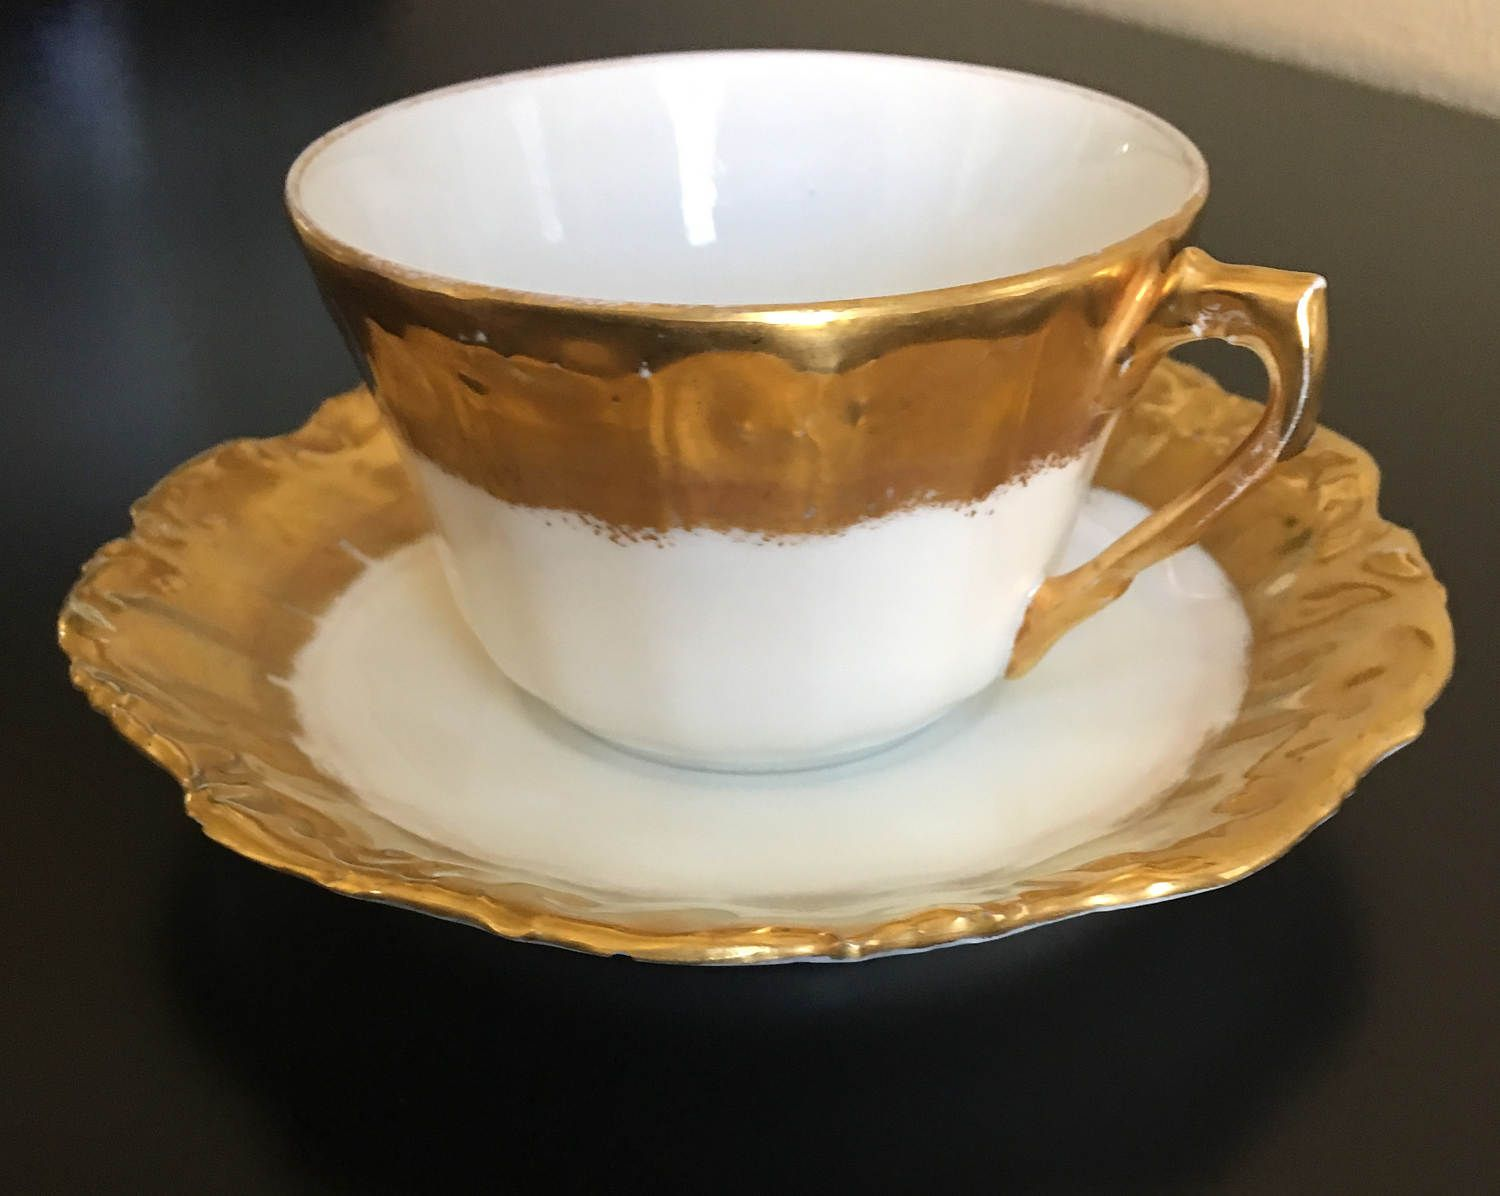 trim saucer Brown with gold